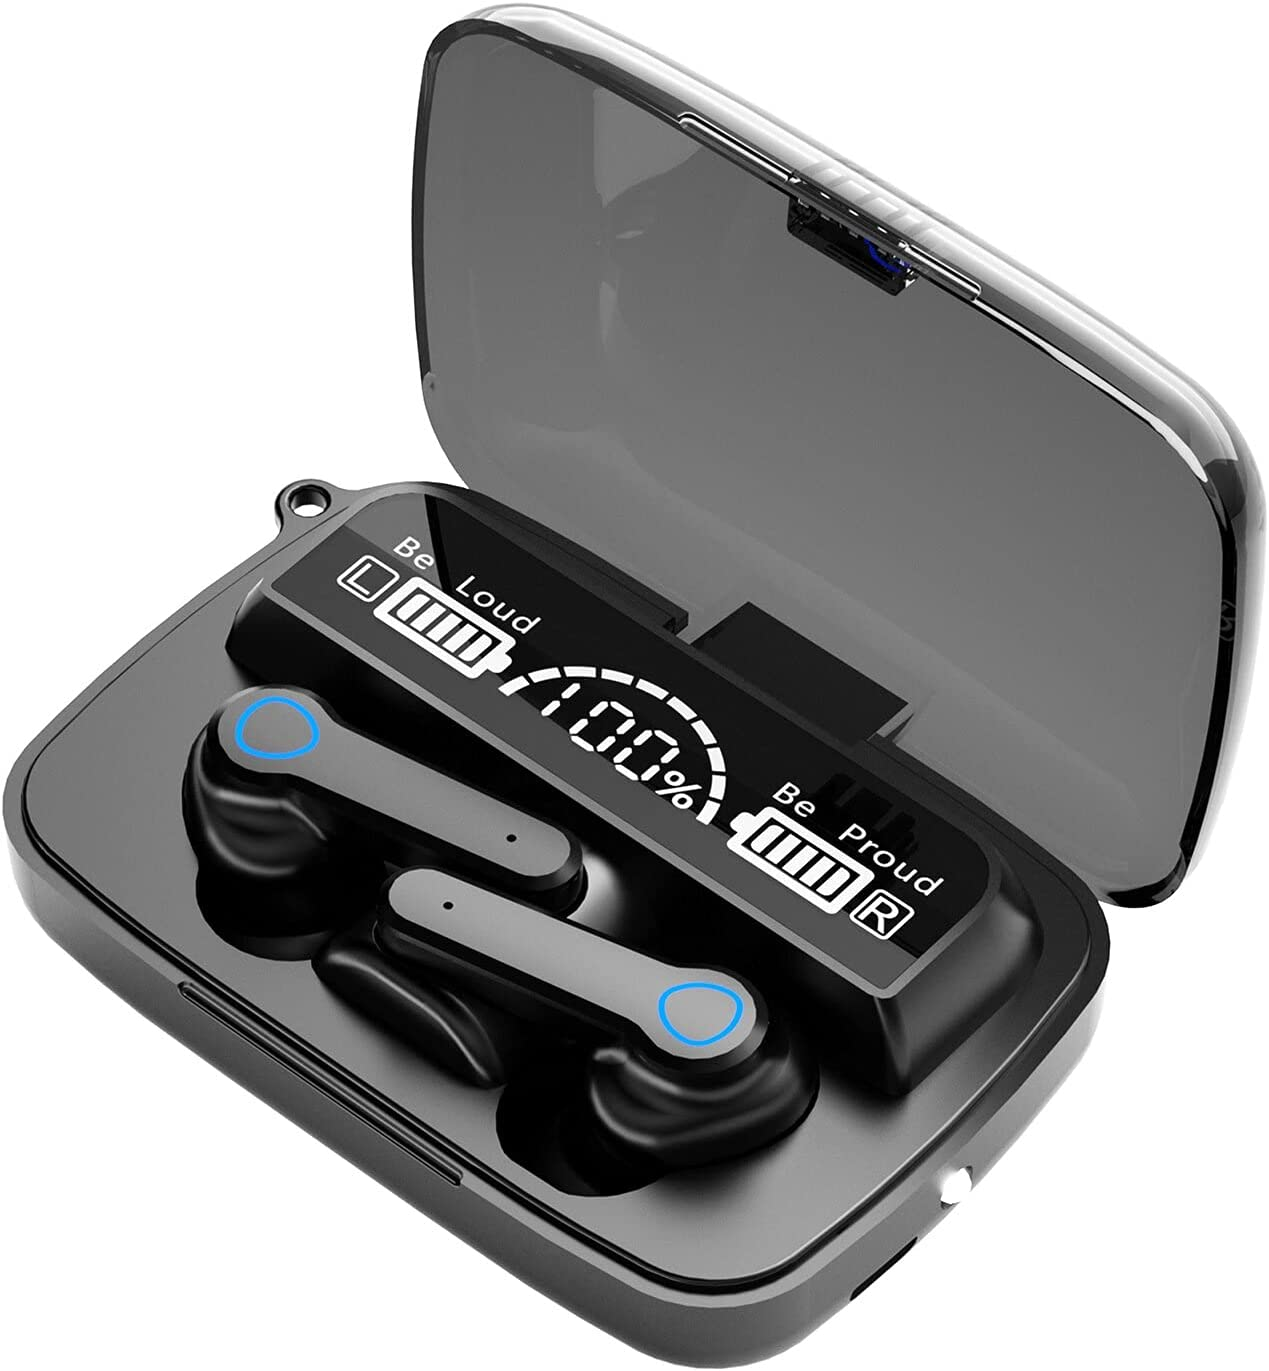 BD&M True Wireless Earbuds, Bluetooth 5.0 in-Ear TWS Stereo Headphones with Smart LED Display Charging Case Waterproof Built-in Mic for Sports Work Running Compatible with iPhone and Android